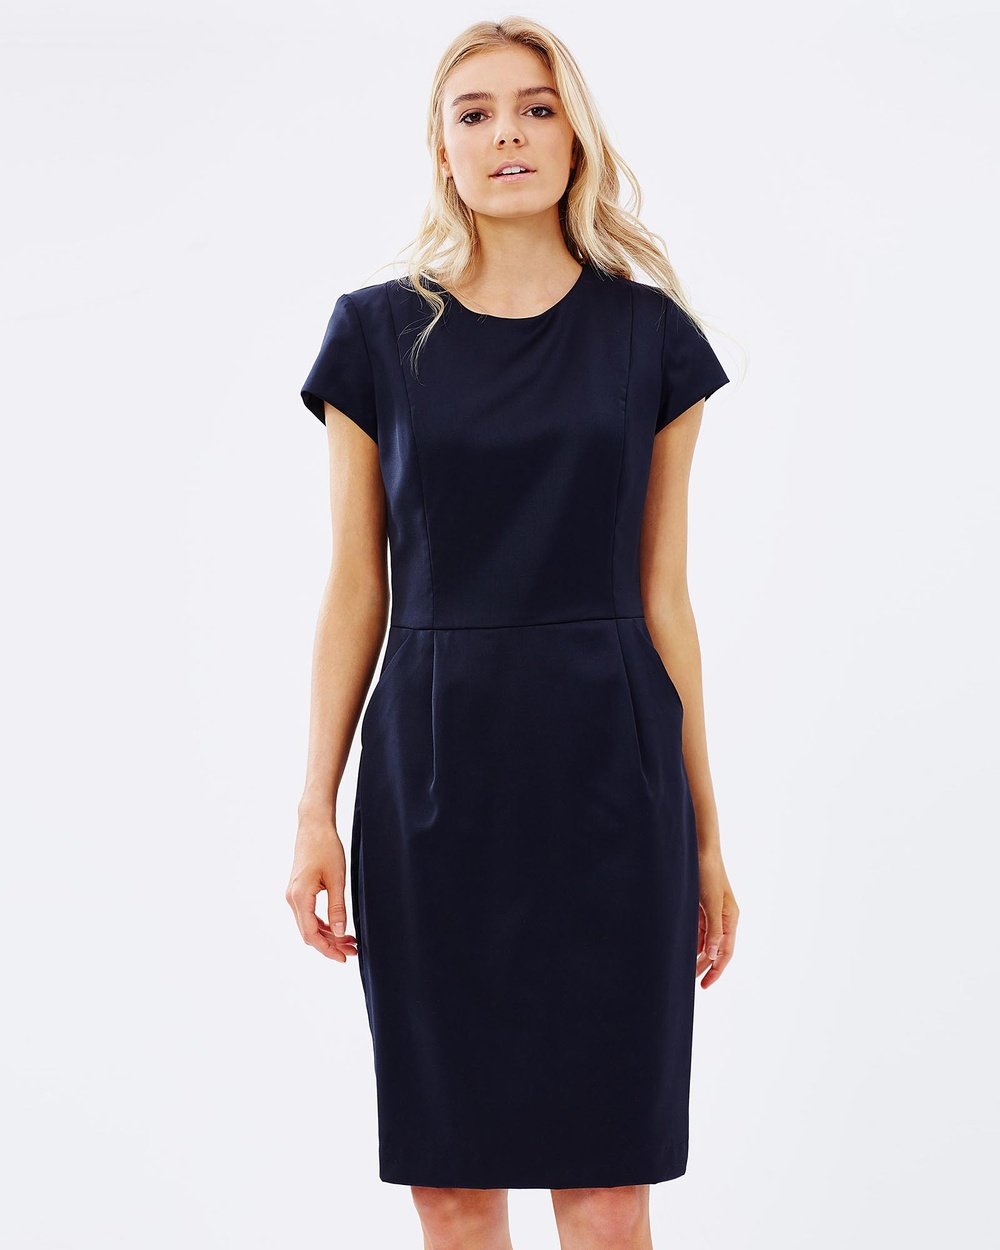 Farage Bianca Dress Dresses Black Bianca Dress